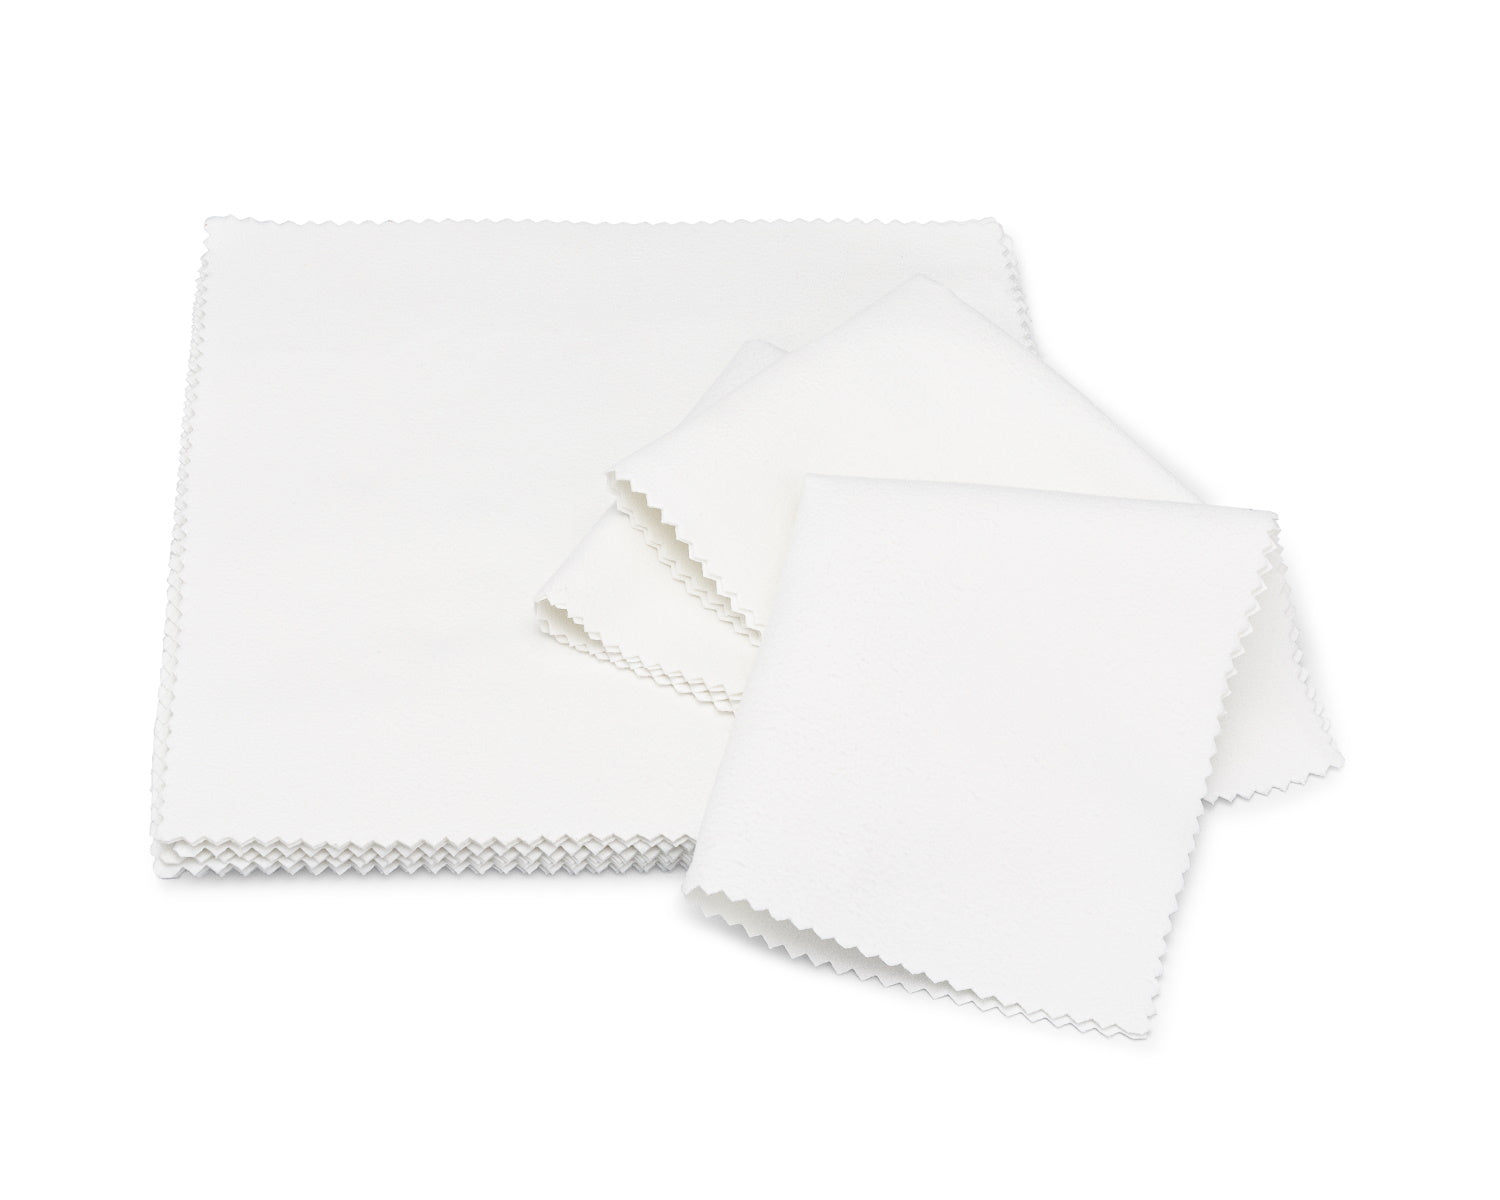 large microfiber lens cleaning cloth